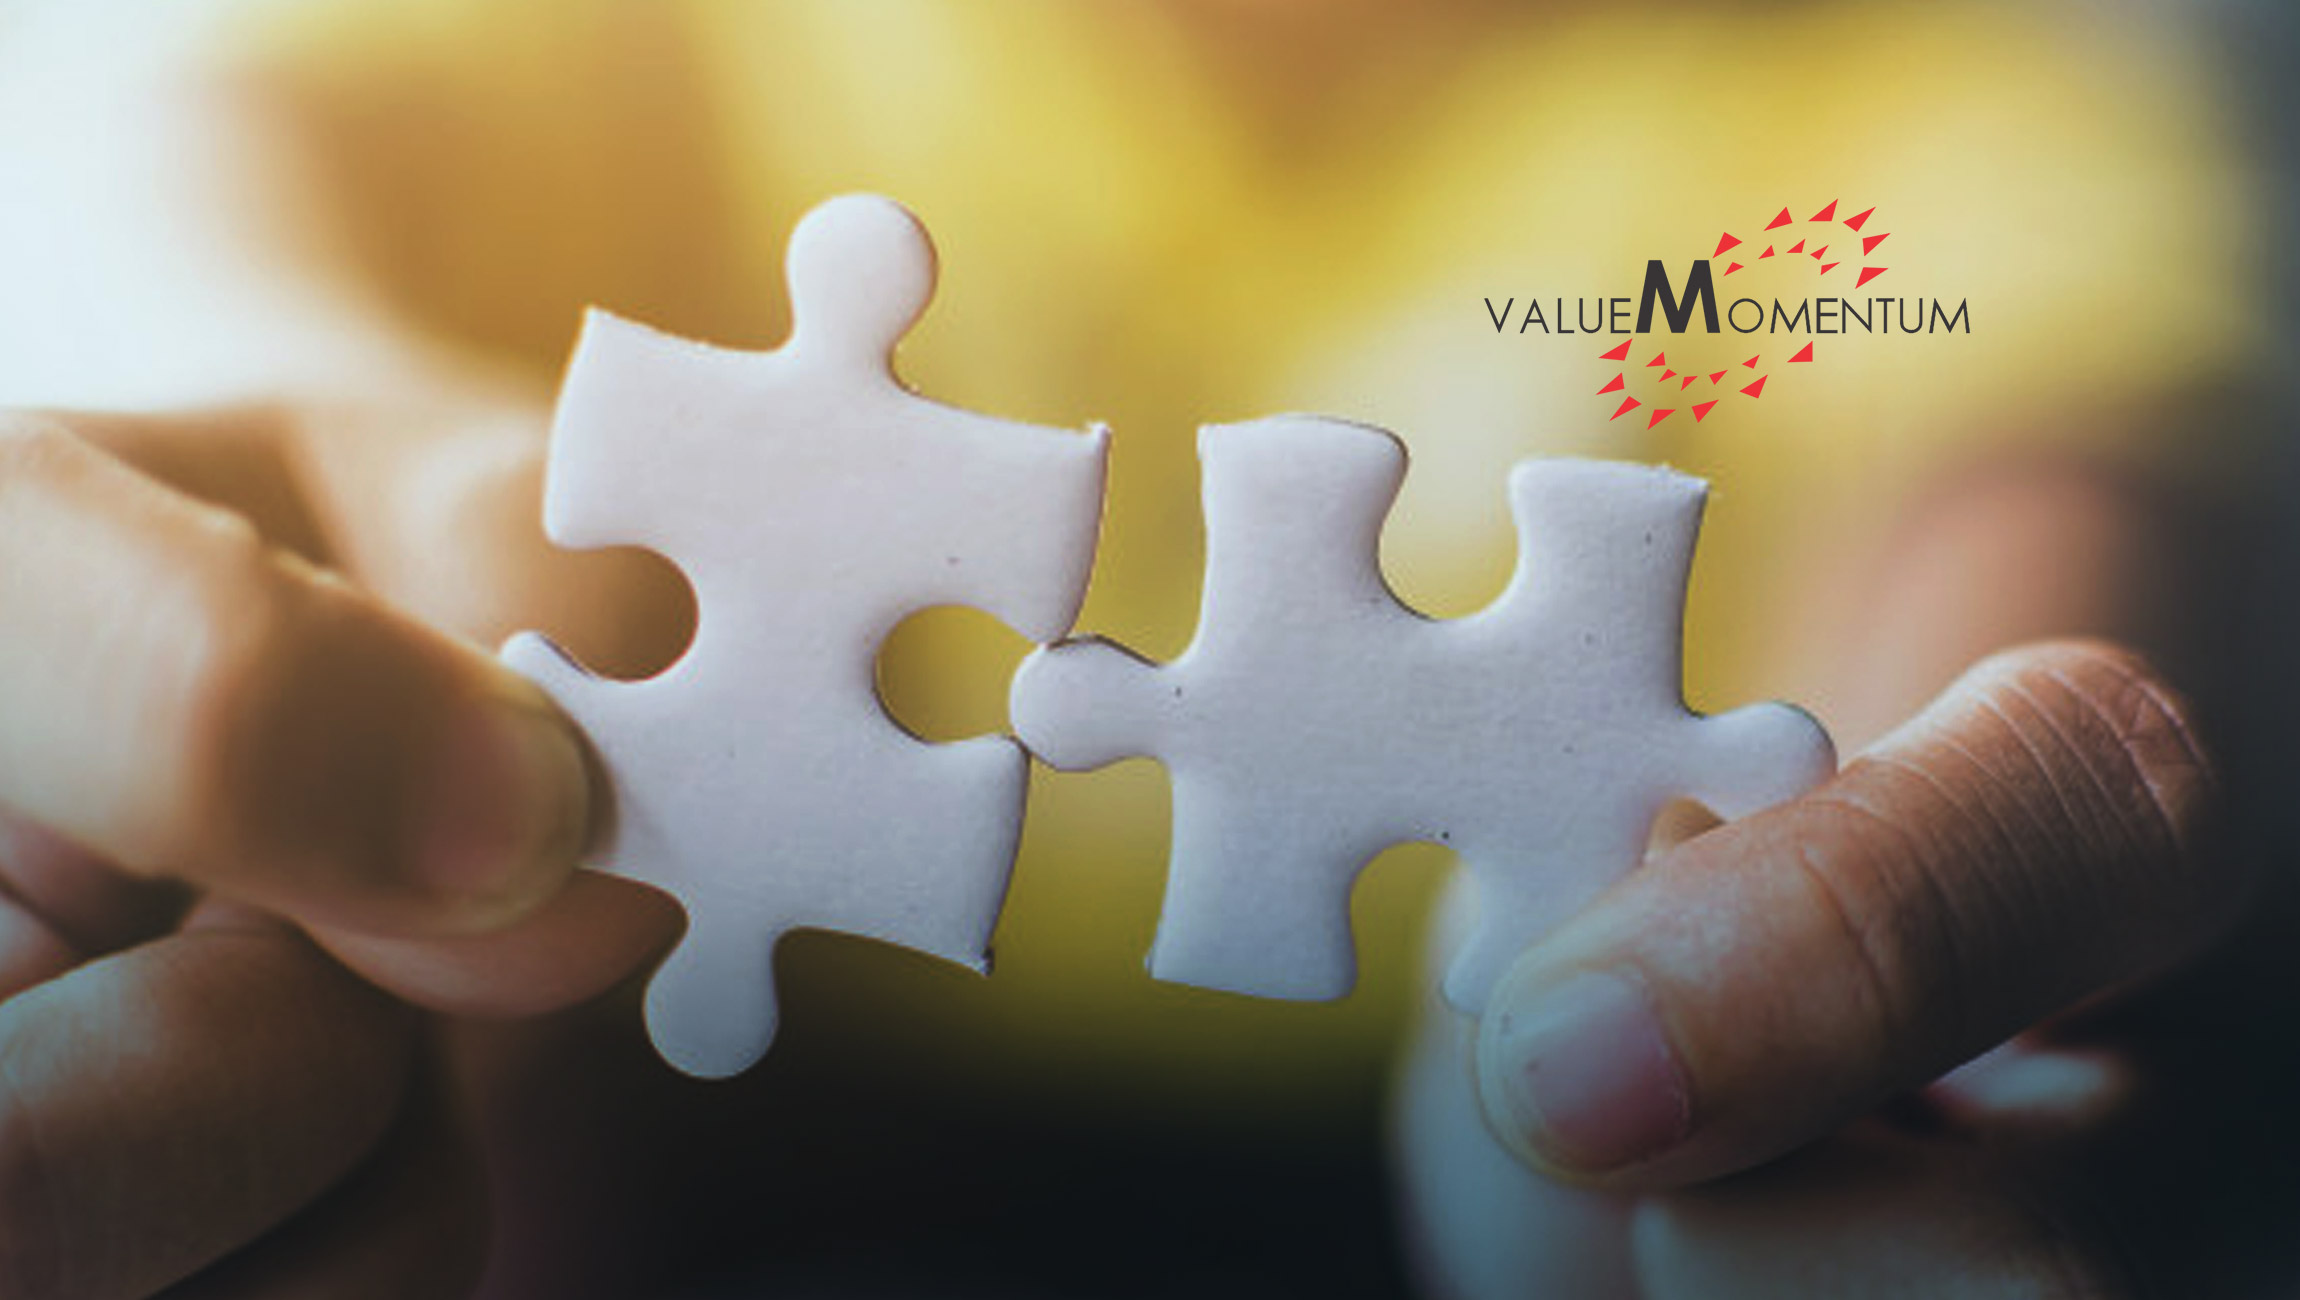 ValueMomentum Joins the MuleSoft Partner Program